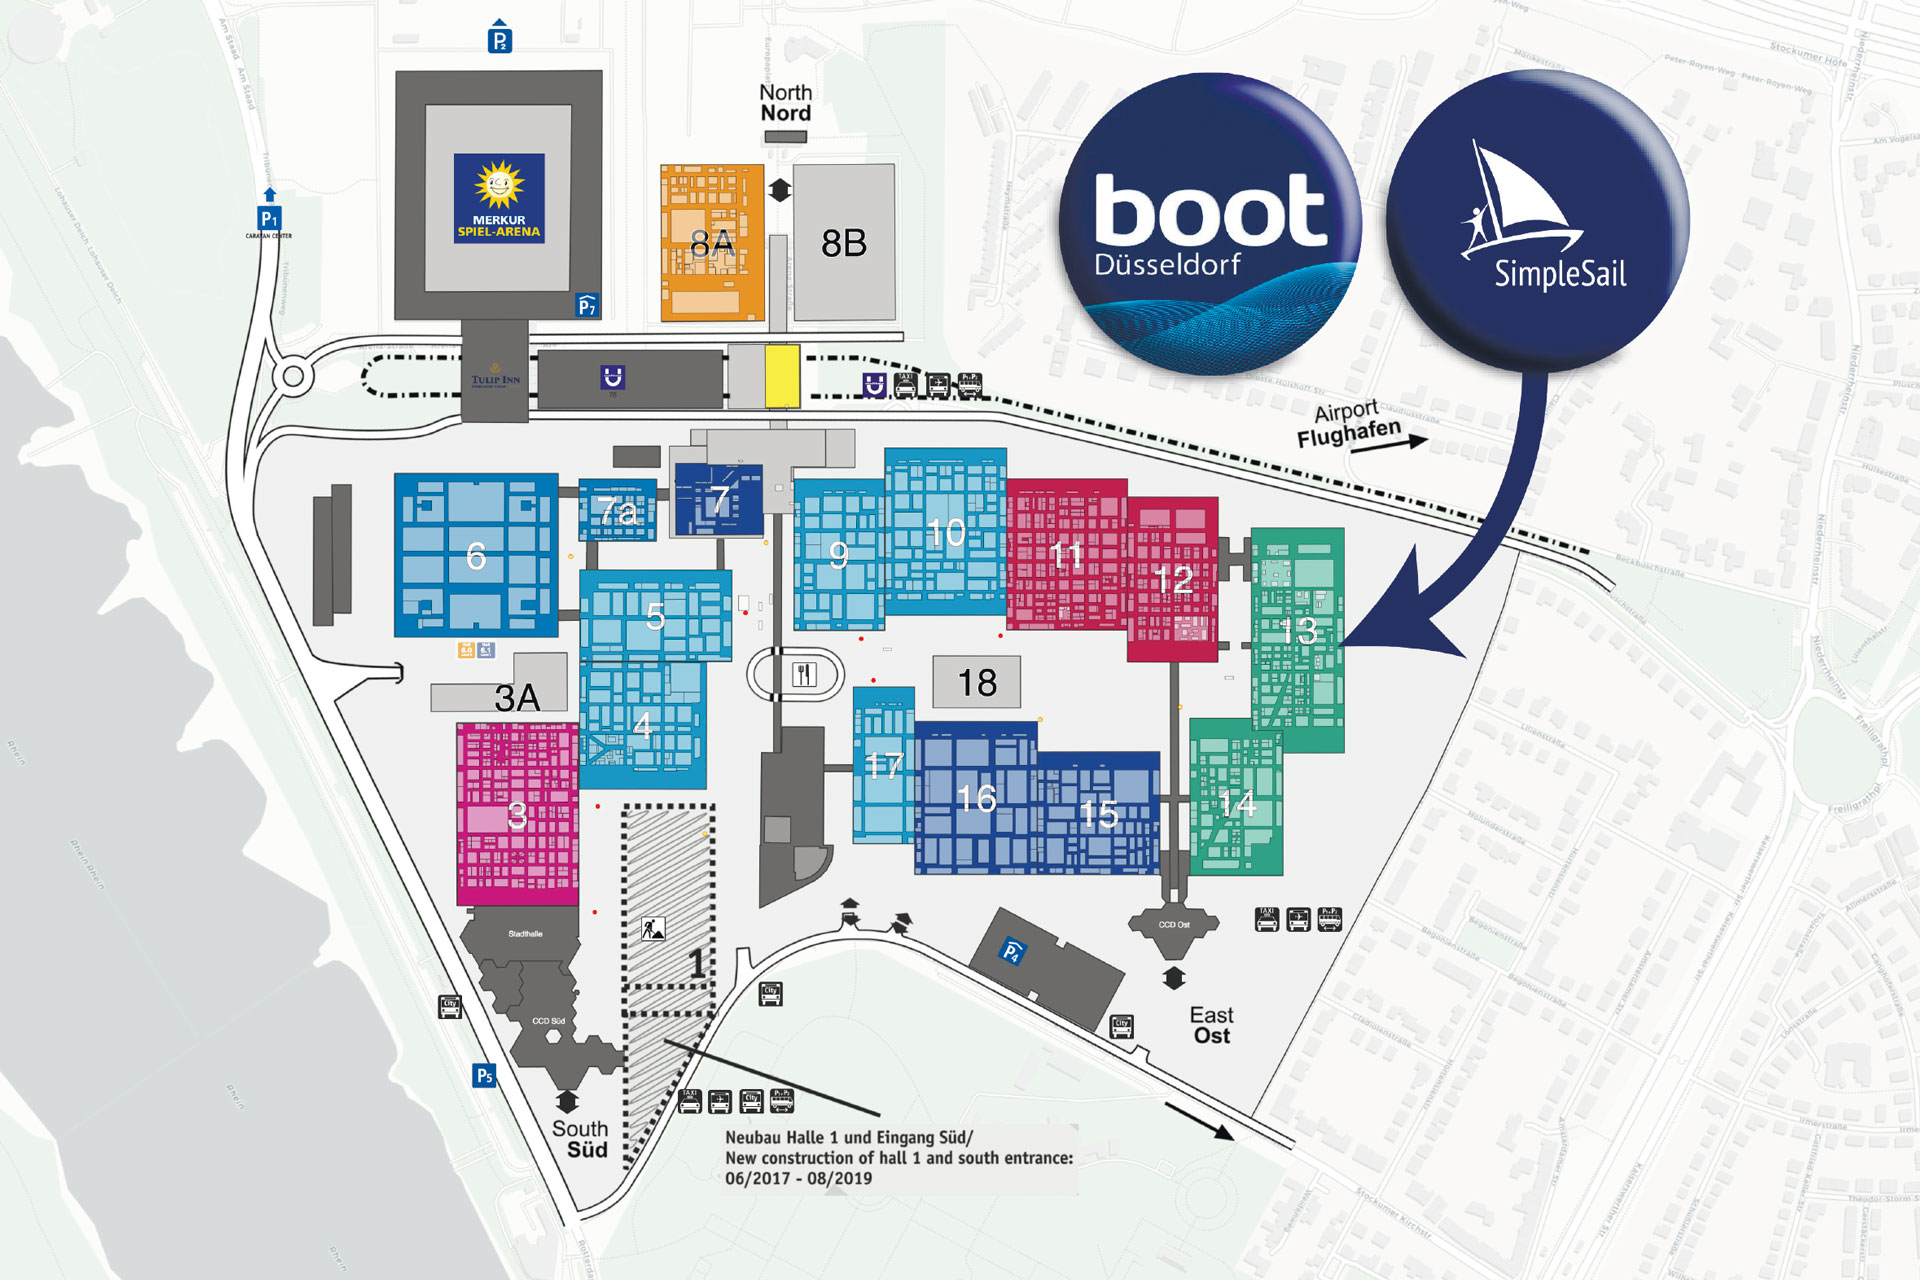 SimpleSail Stand on BOOT Dusseldorf 2019, exhibition plan